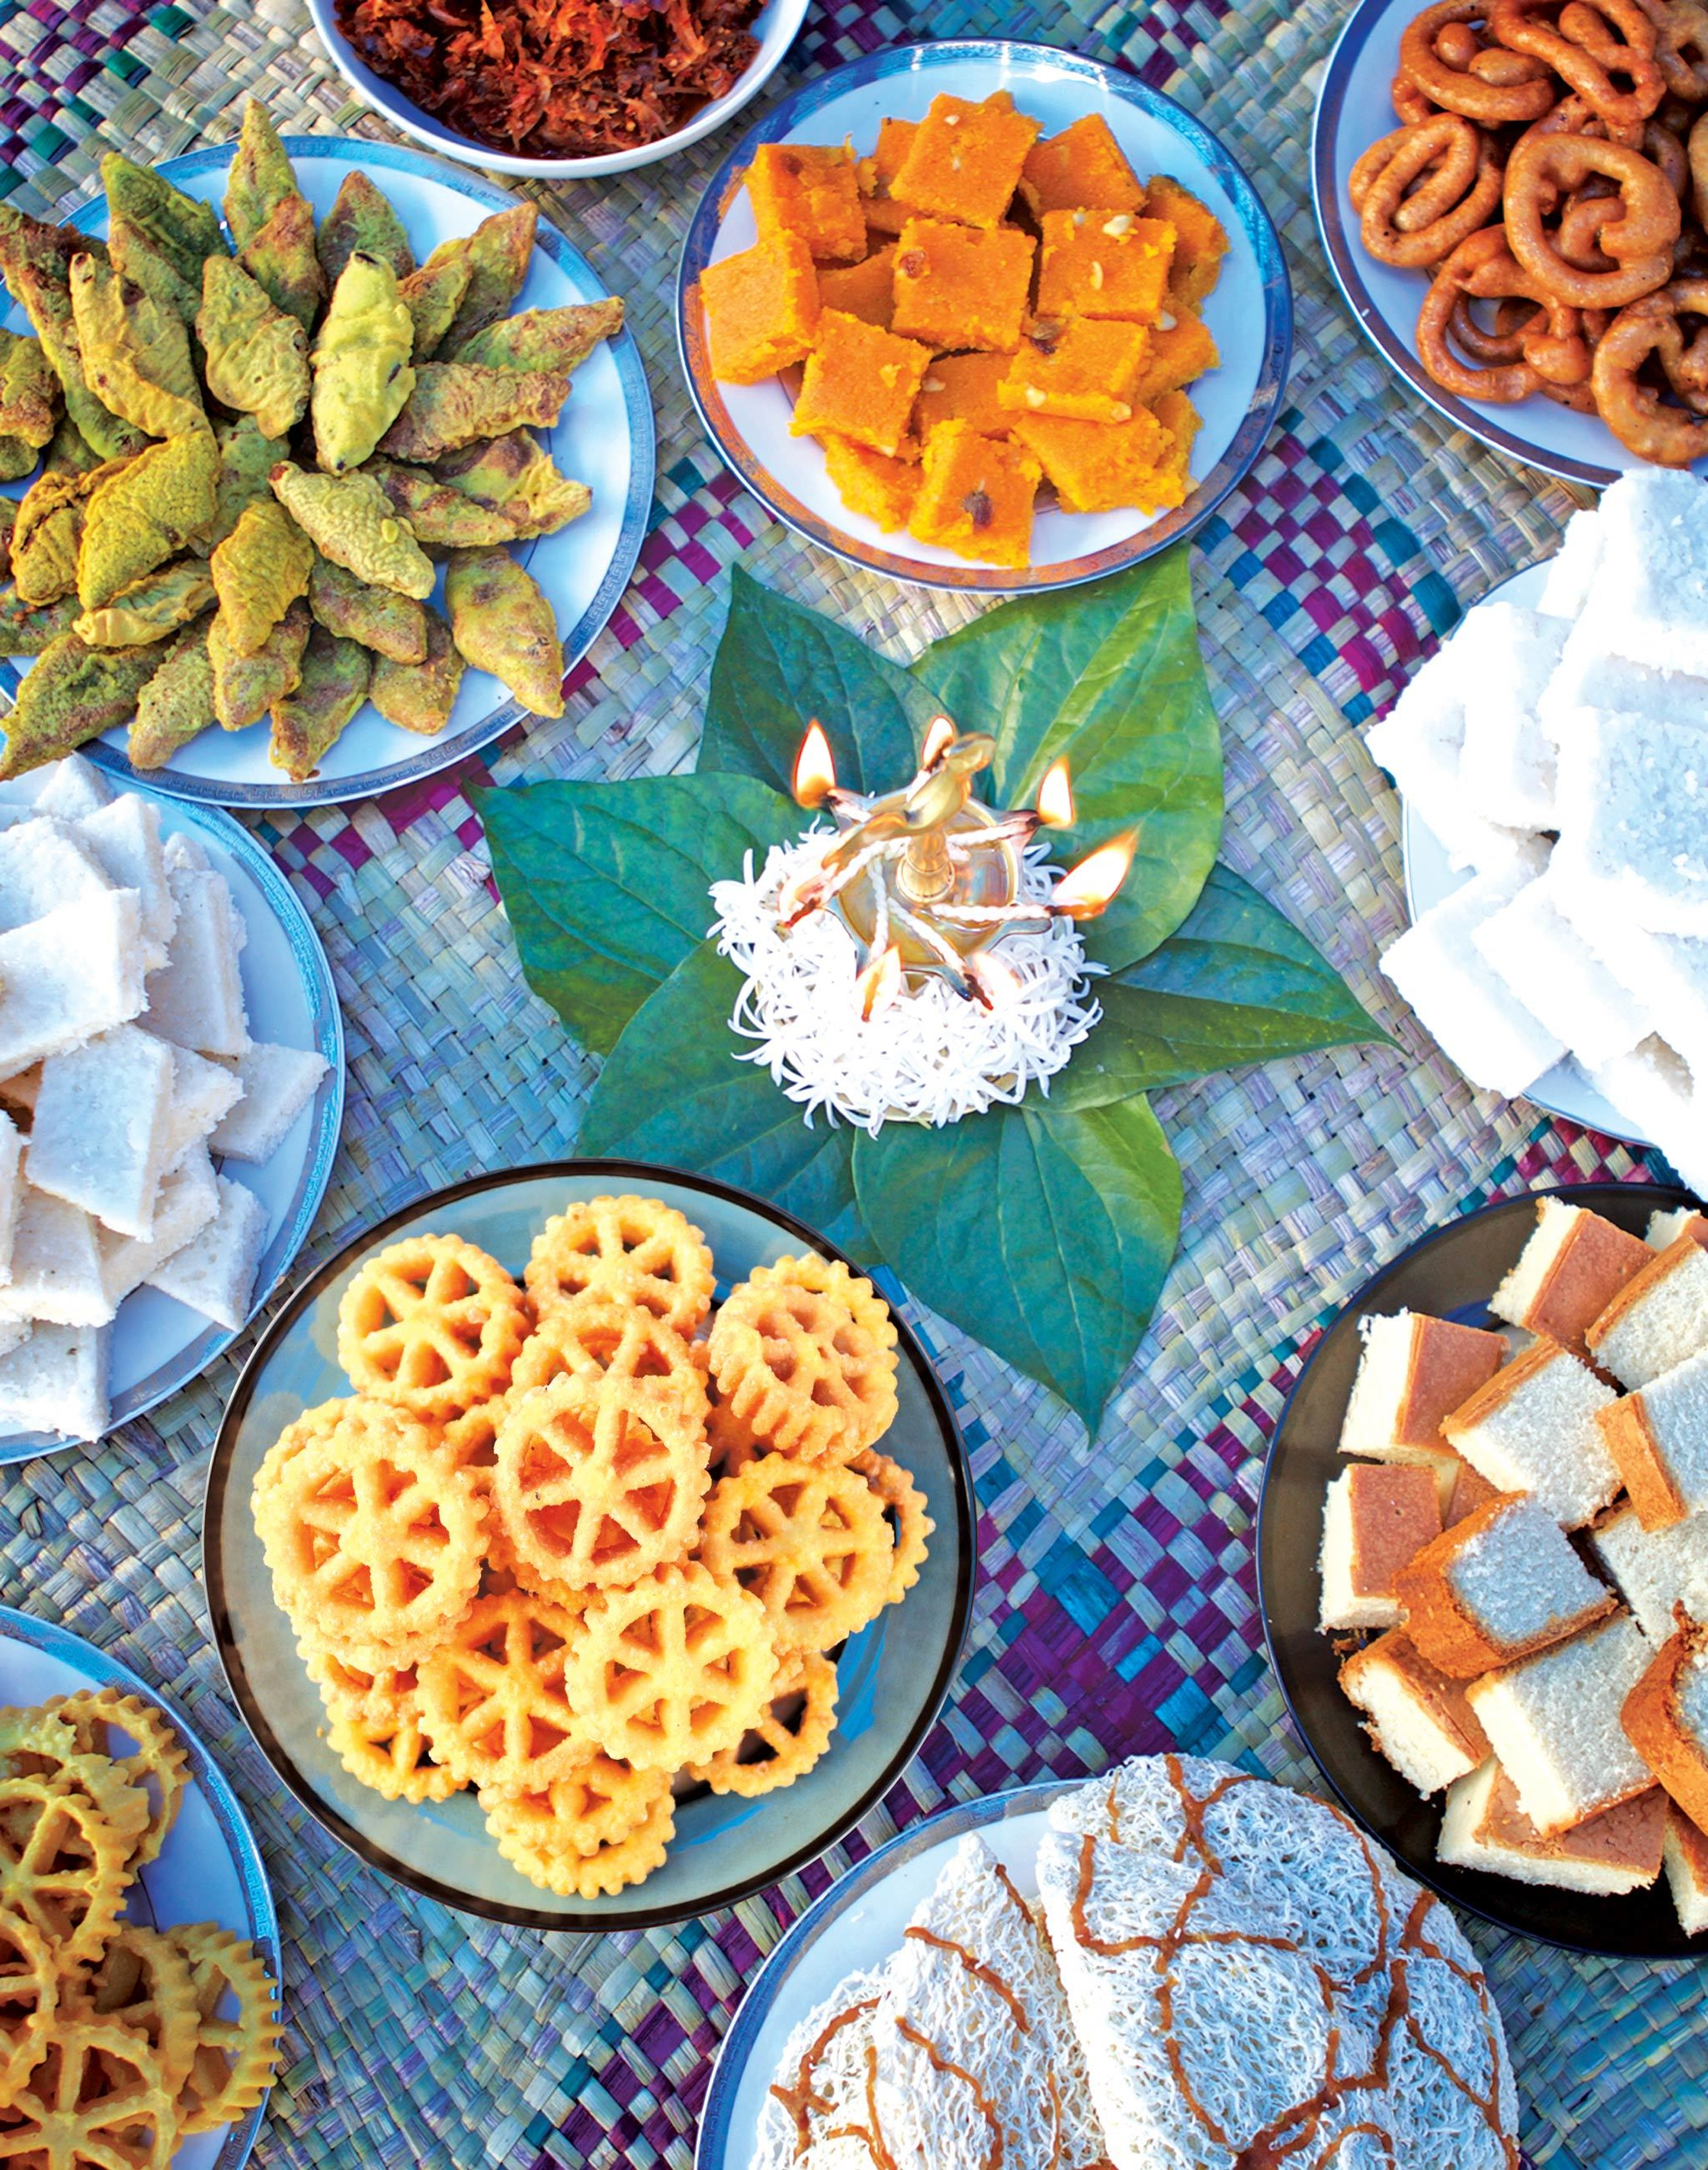 Join families and neighbourhoods and partake in Avurudu customs